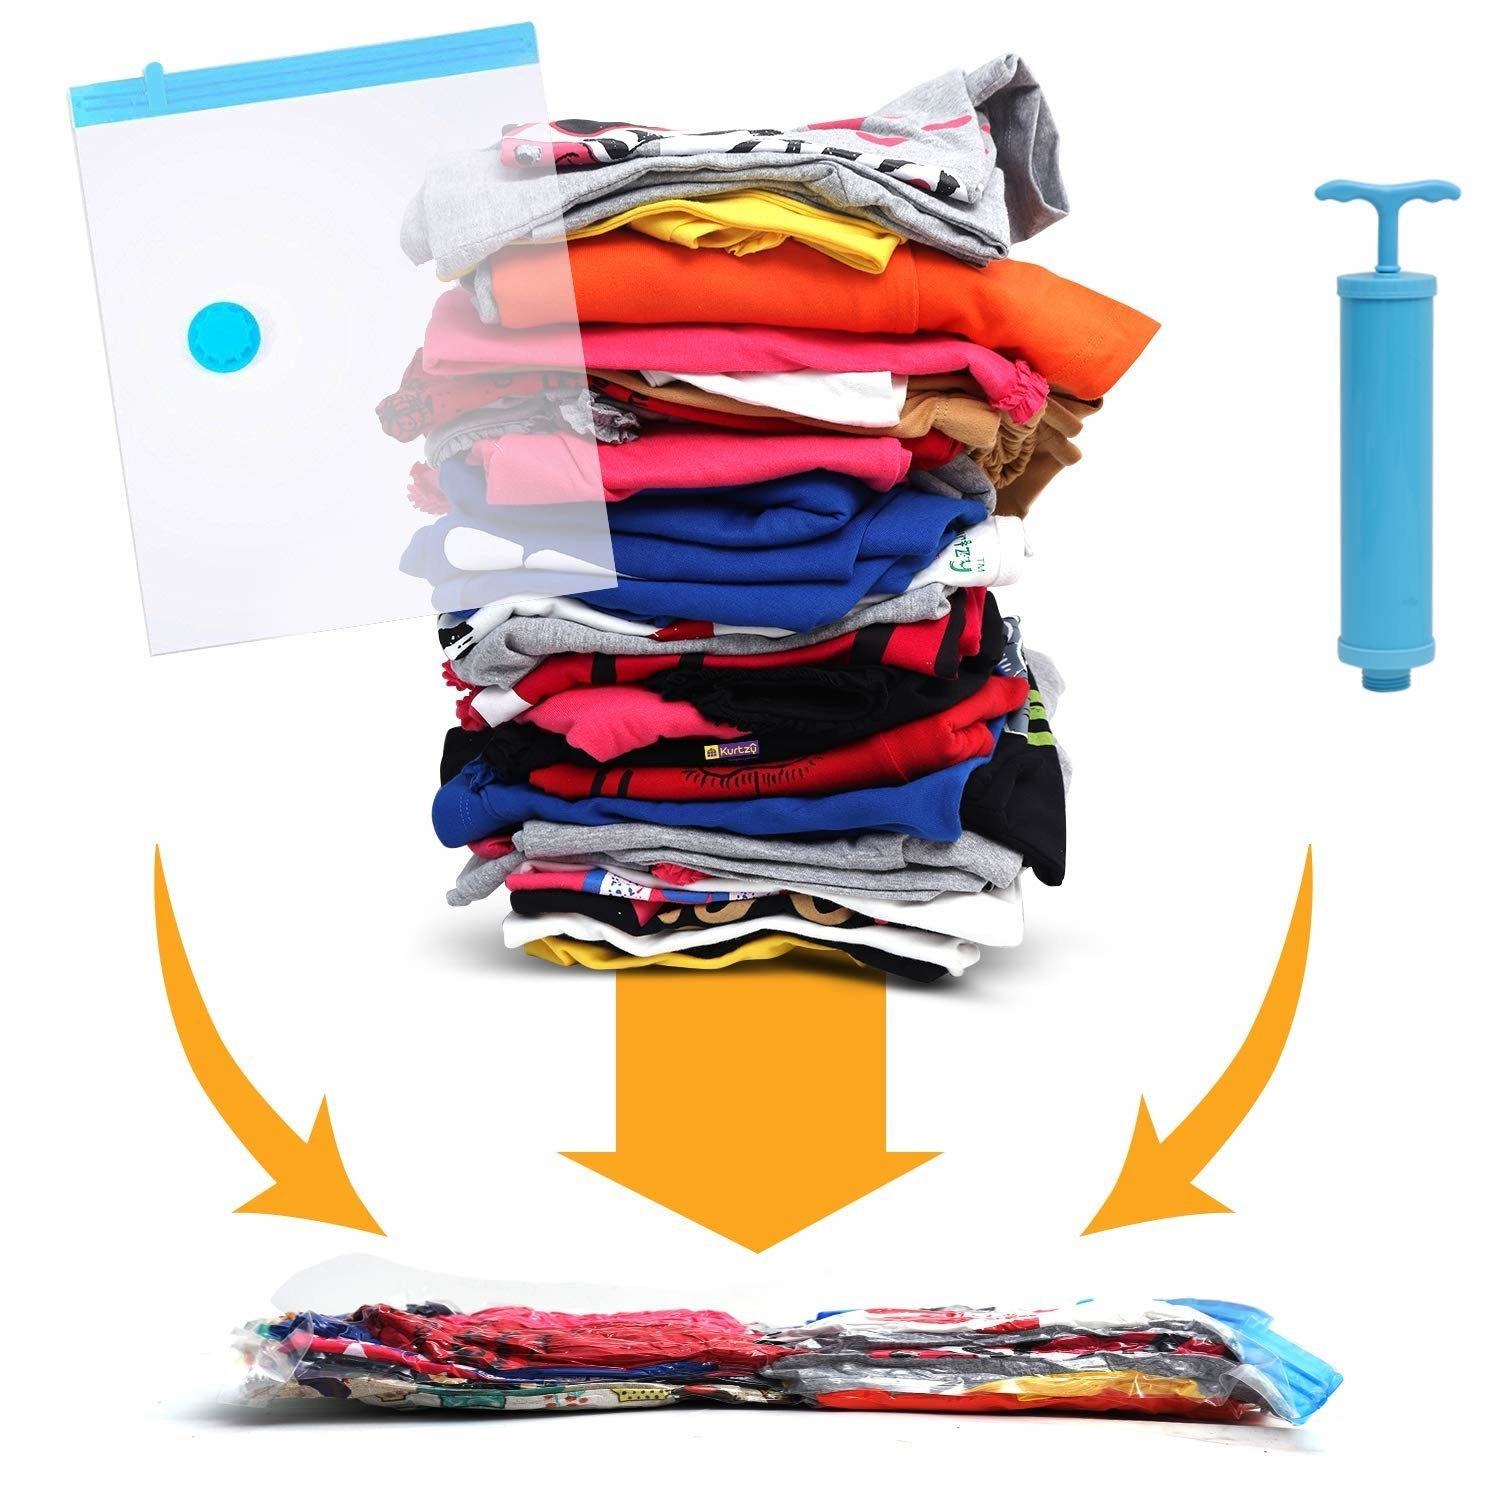 A compressed vacuum bag filled with clothes